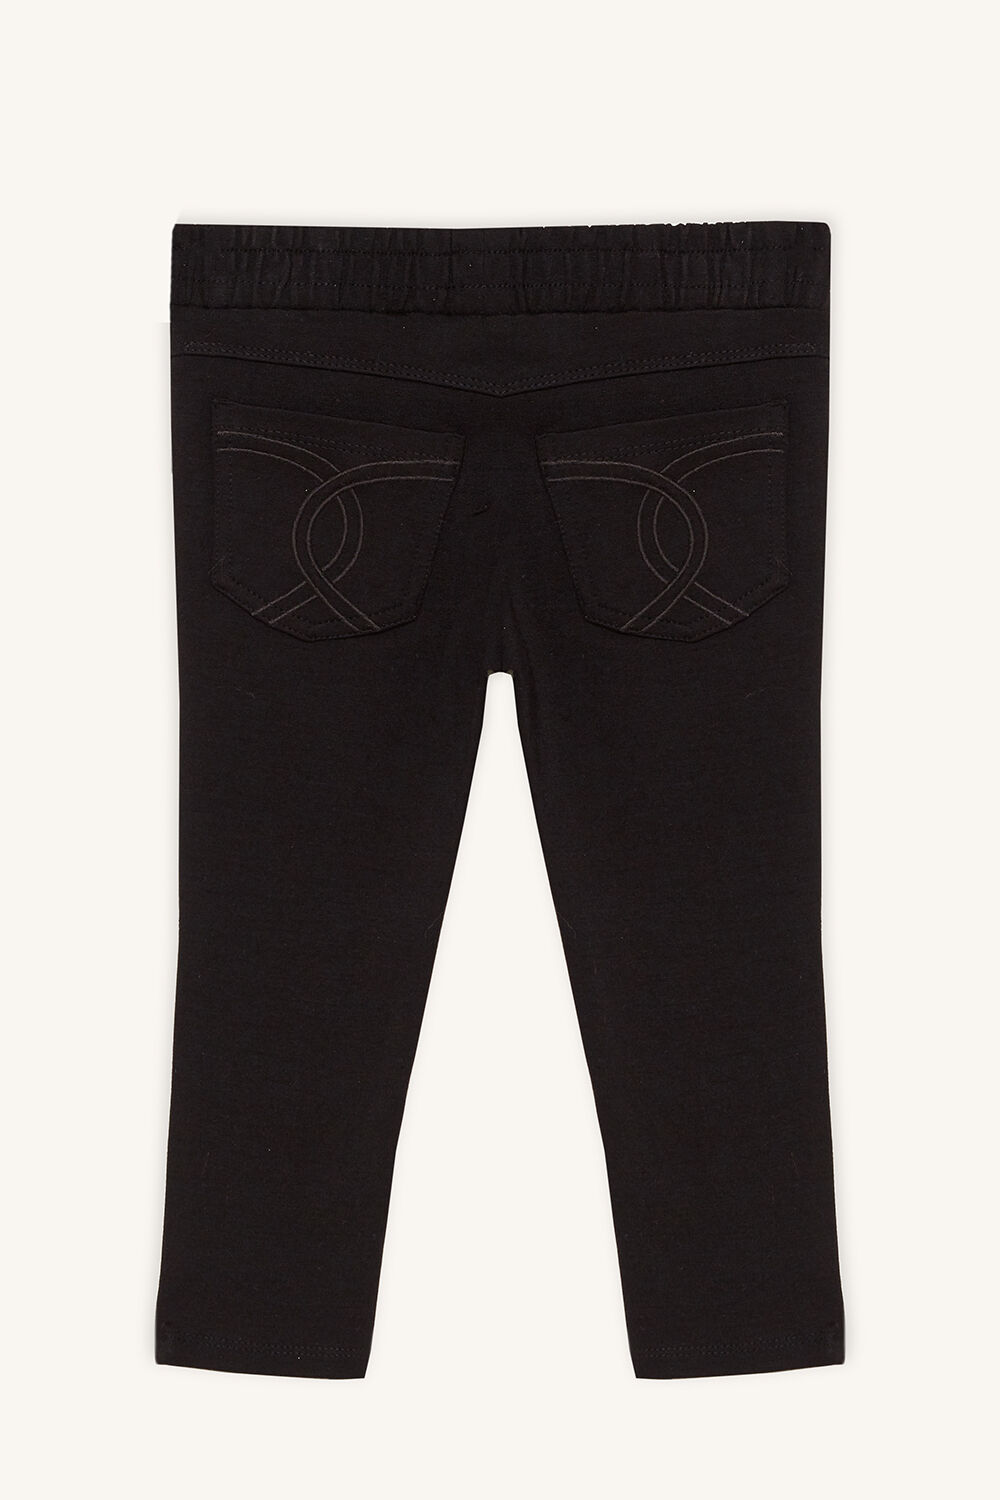 PIERA PULL ON PANT in colour JET BLACK